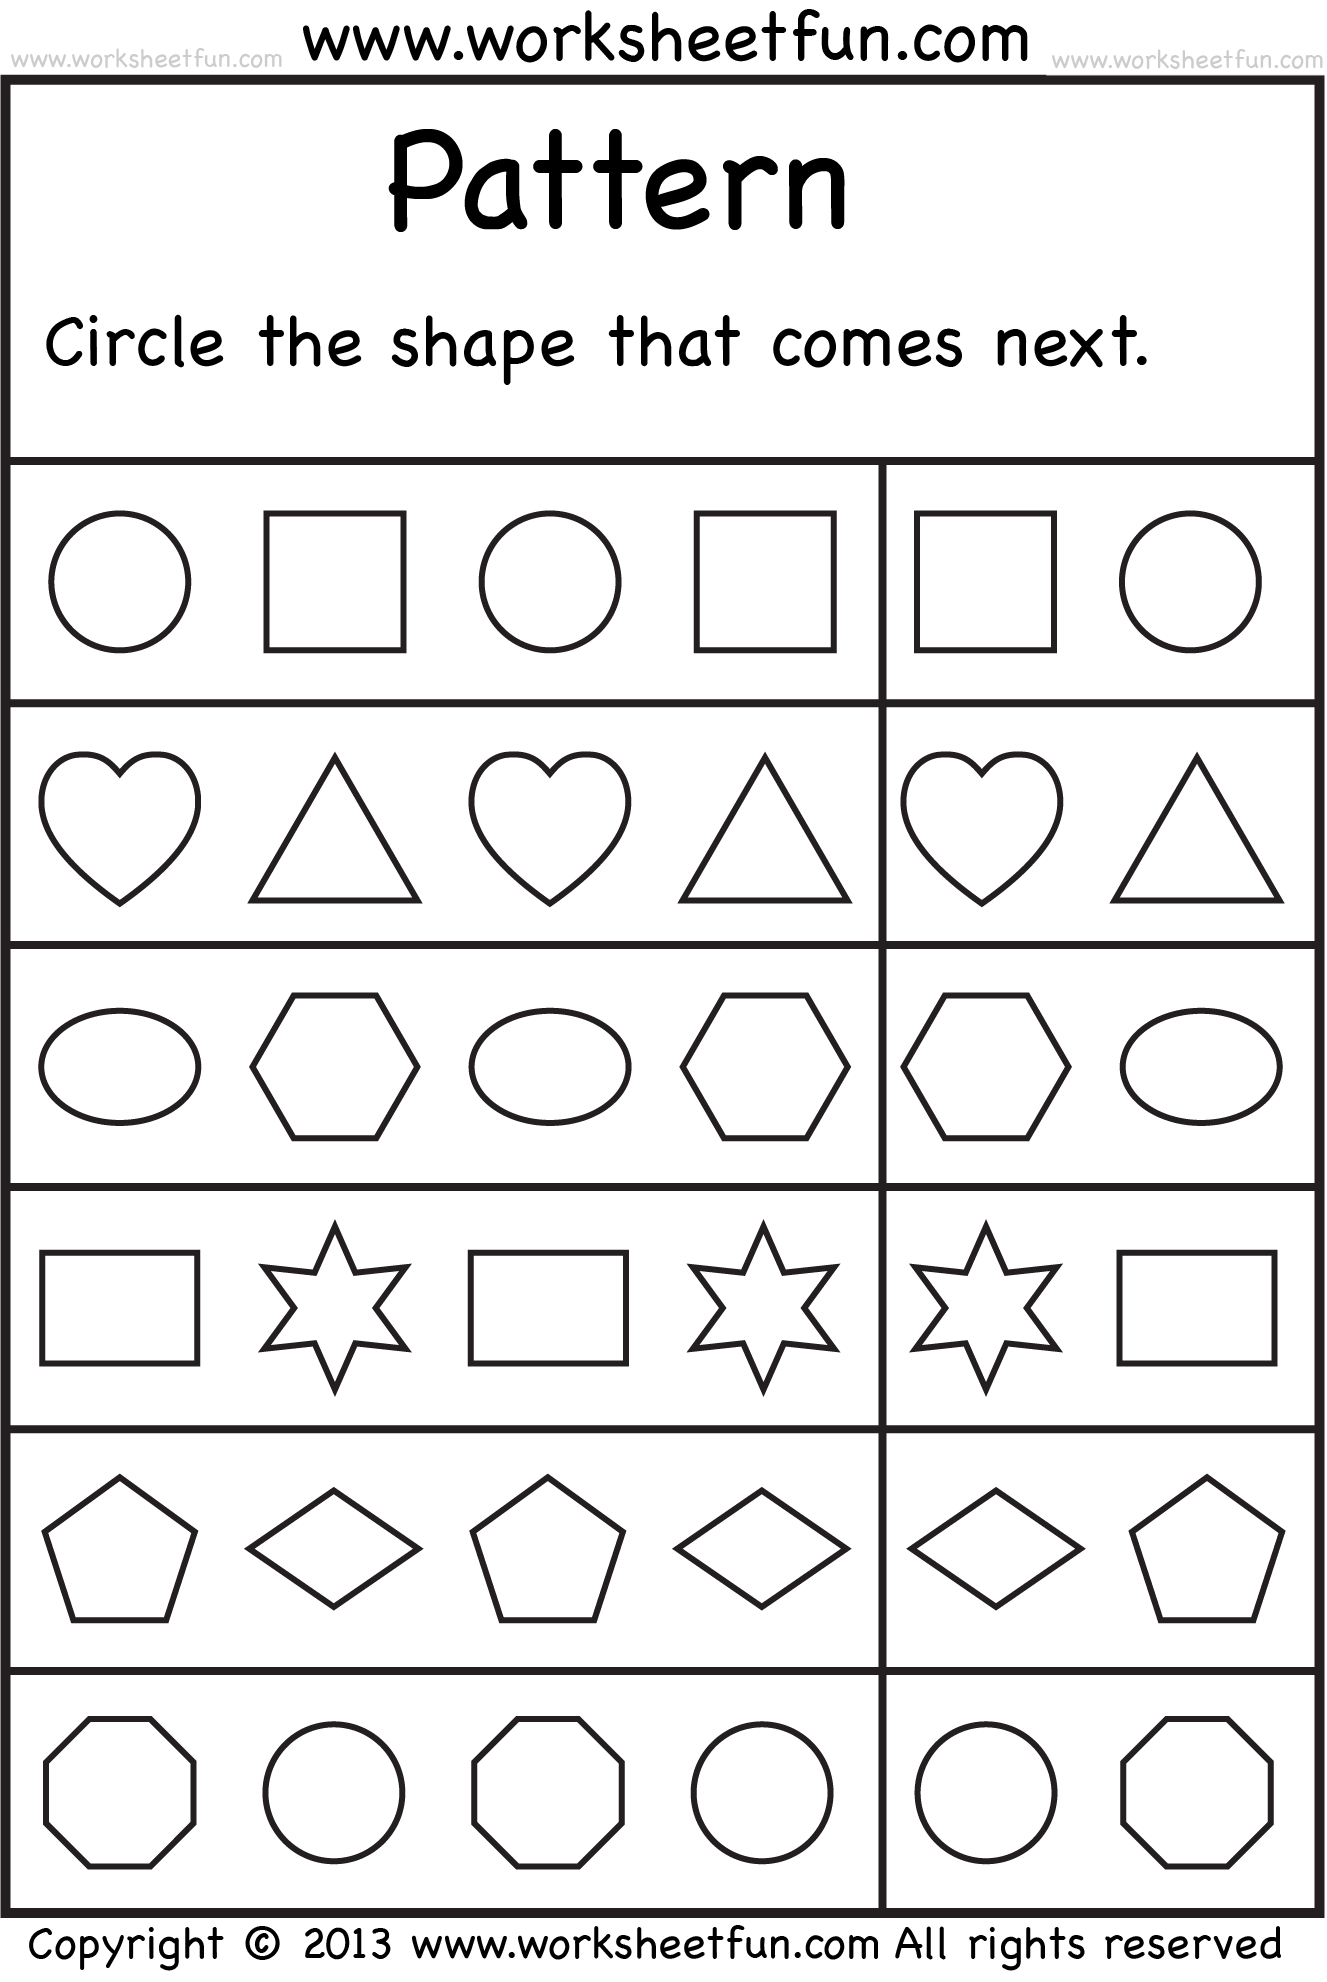 Aldiablosus  Wonderful  Images About School Worksheets On Pinterest  Number Words  With Handsome  Images About School Worksheets On Pinterest  Number Words Alphabet Worksheets And Free Printable Kindergarten Worksheets With Appealing Geometry Grade  Worksheets Also How To Tell The Time Worksheets In Addition English Worksheets For Class  And Printable Worksheets For Grade  Maths As Well As Free Preposition Worksheets For Grade  Additionally Music Note Naming Worksheets From Pinterestcom With Aldiablosus  Handsome  Images About School Worksheets On Pinterest  Number Words  With Appealing  Images About School Worksheets On Pinterest  Number Words Alphabet Worksheets And Free Printable Kindergarten Worksheets And Wonderful Geometry Grade  Worksheets Also How To Tell The Time Worksheets In Addition English Worksheets For Class  From Pinterestcom